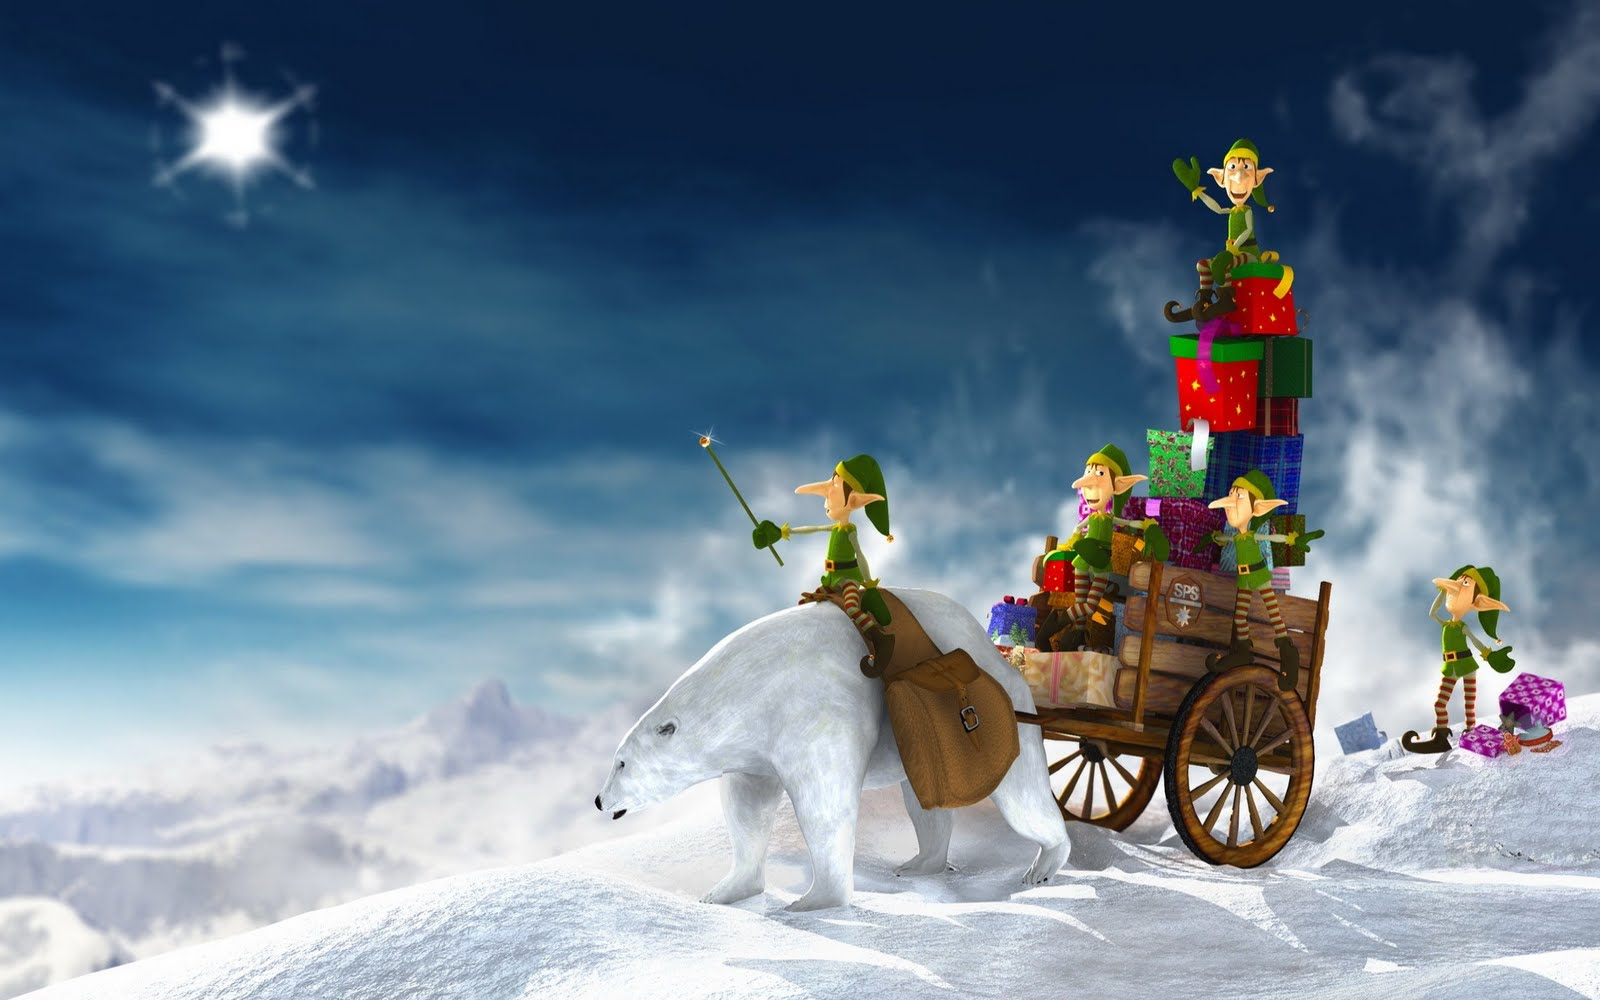 Great   Wallpaper Horse Ipod Touch - HQ%2Bsanta%2Bclaus%2Bwallpaper  Collection_597762.jpg